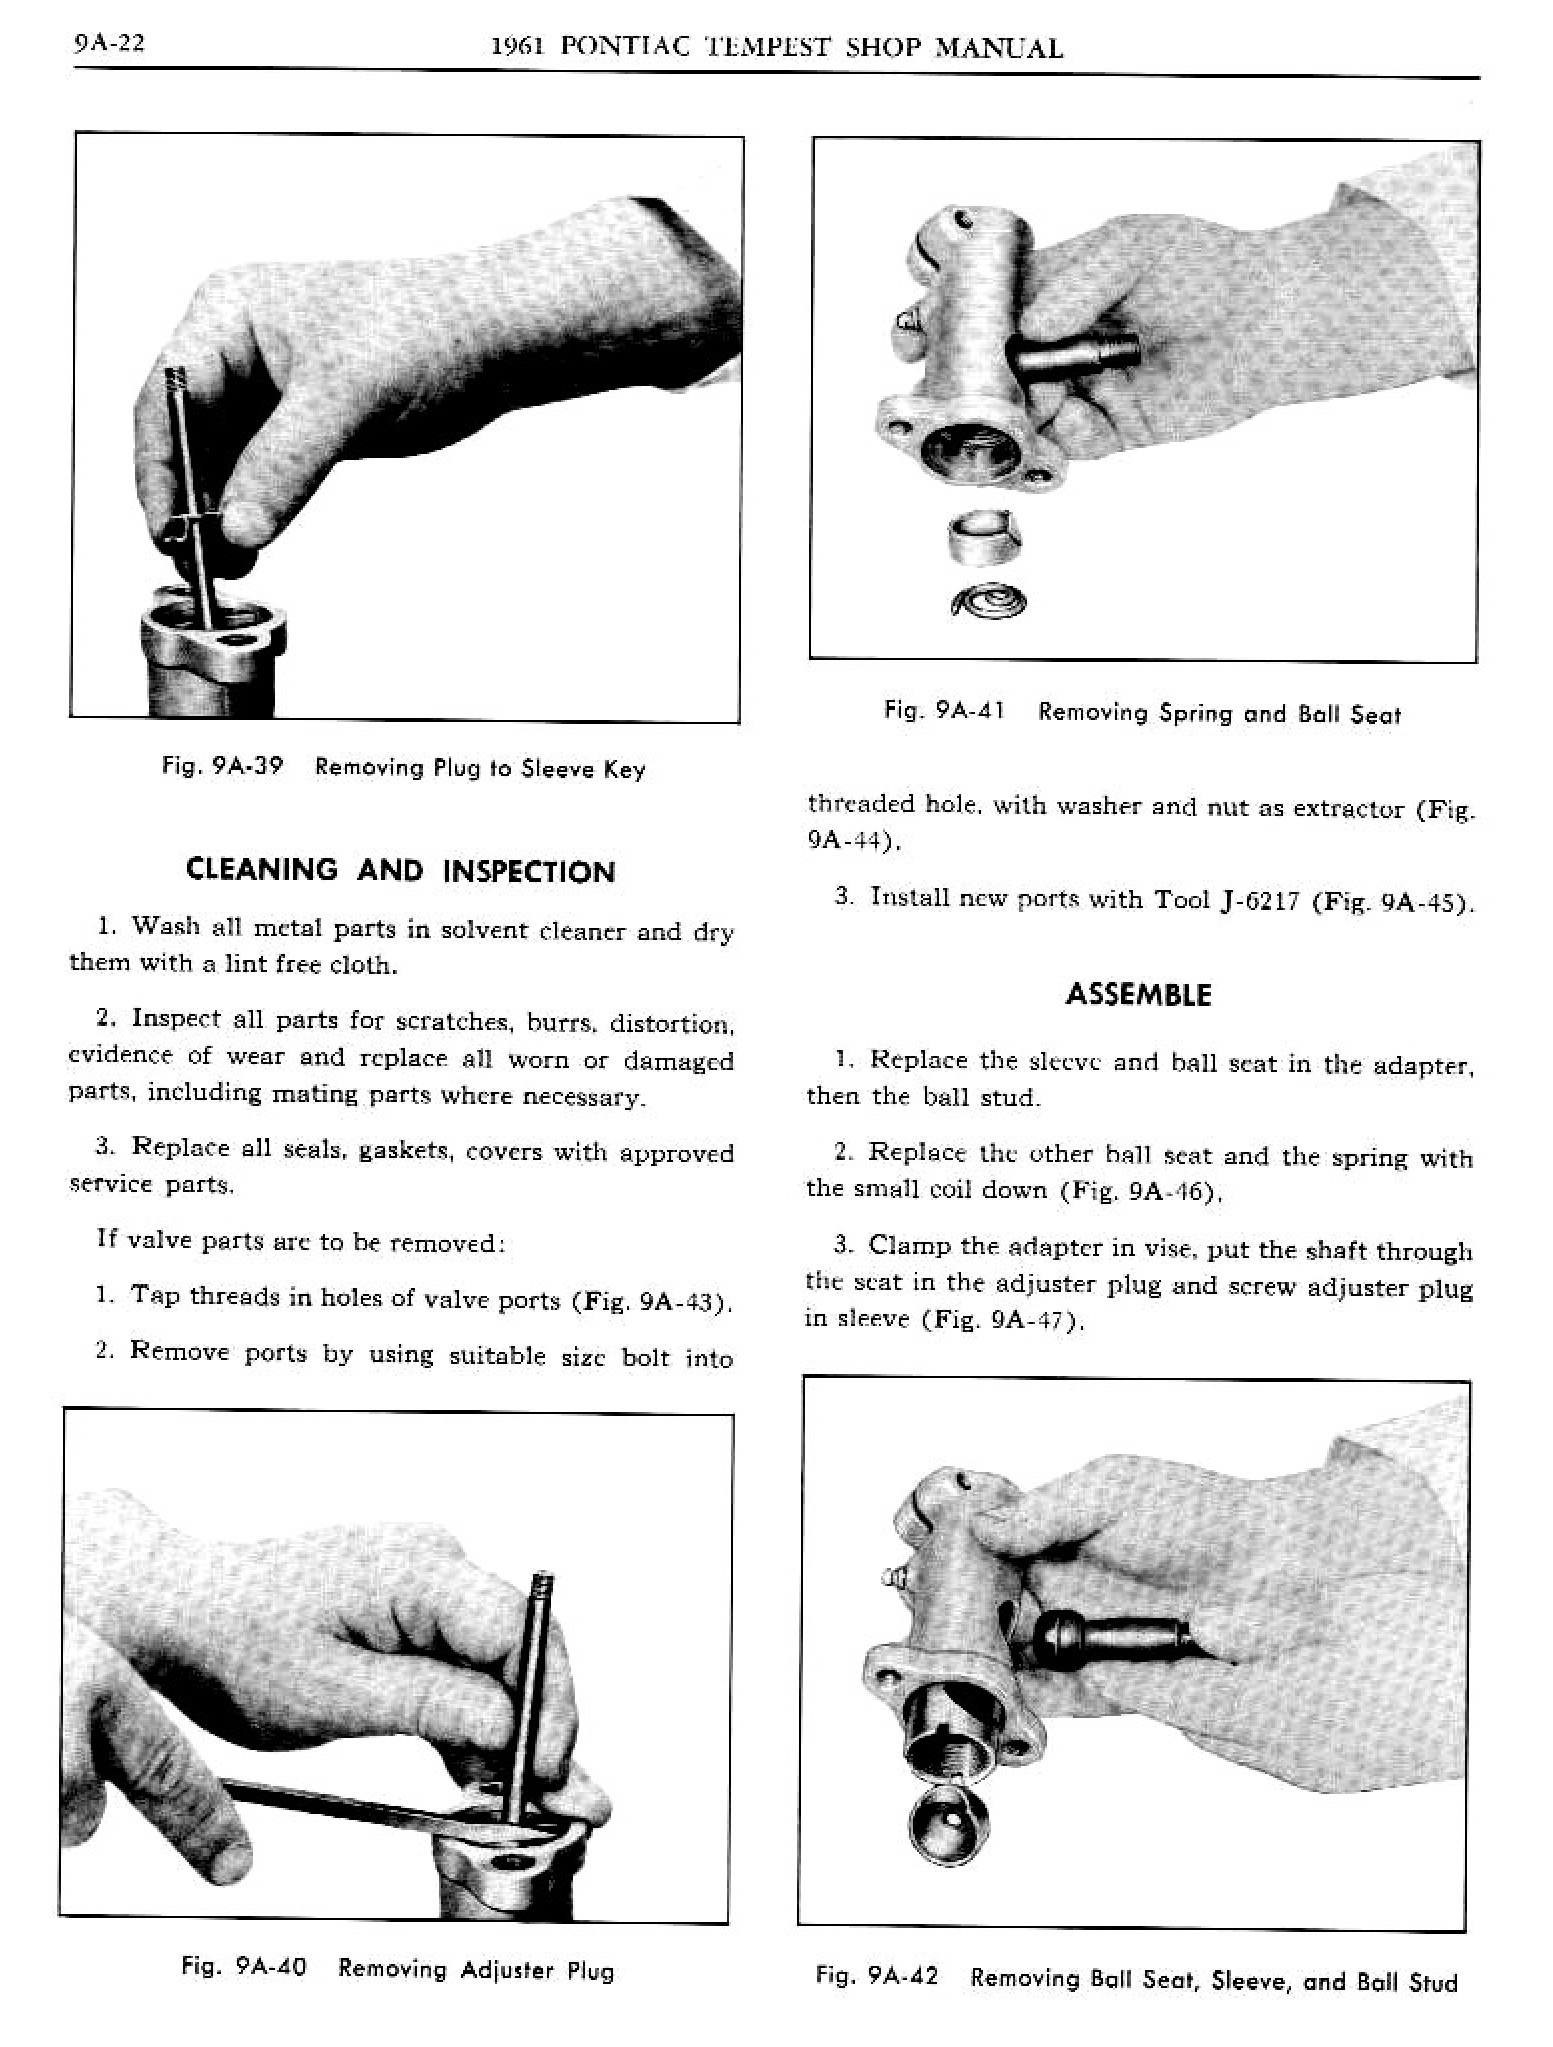 1961 Pontiac Tempest Shop Manual- Power Steering Page 23 of 29